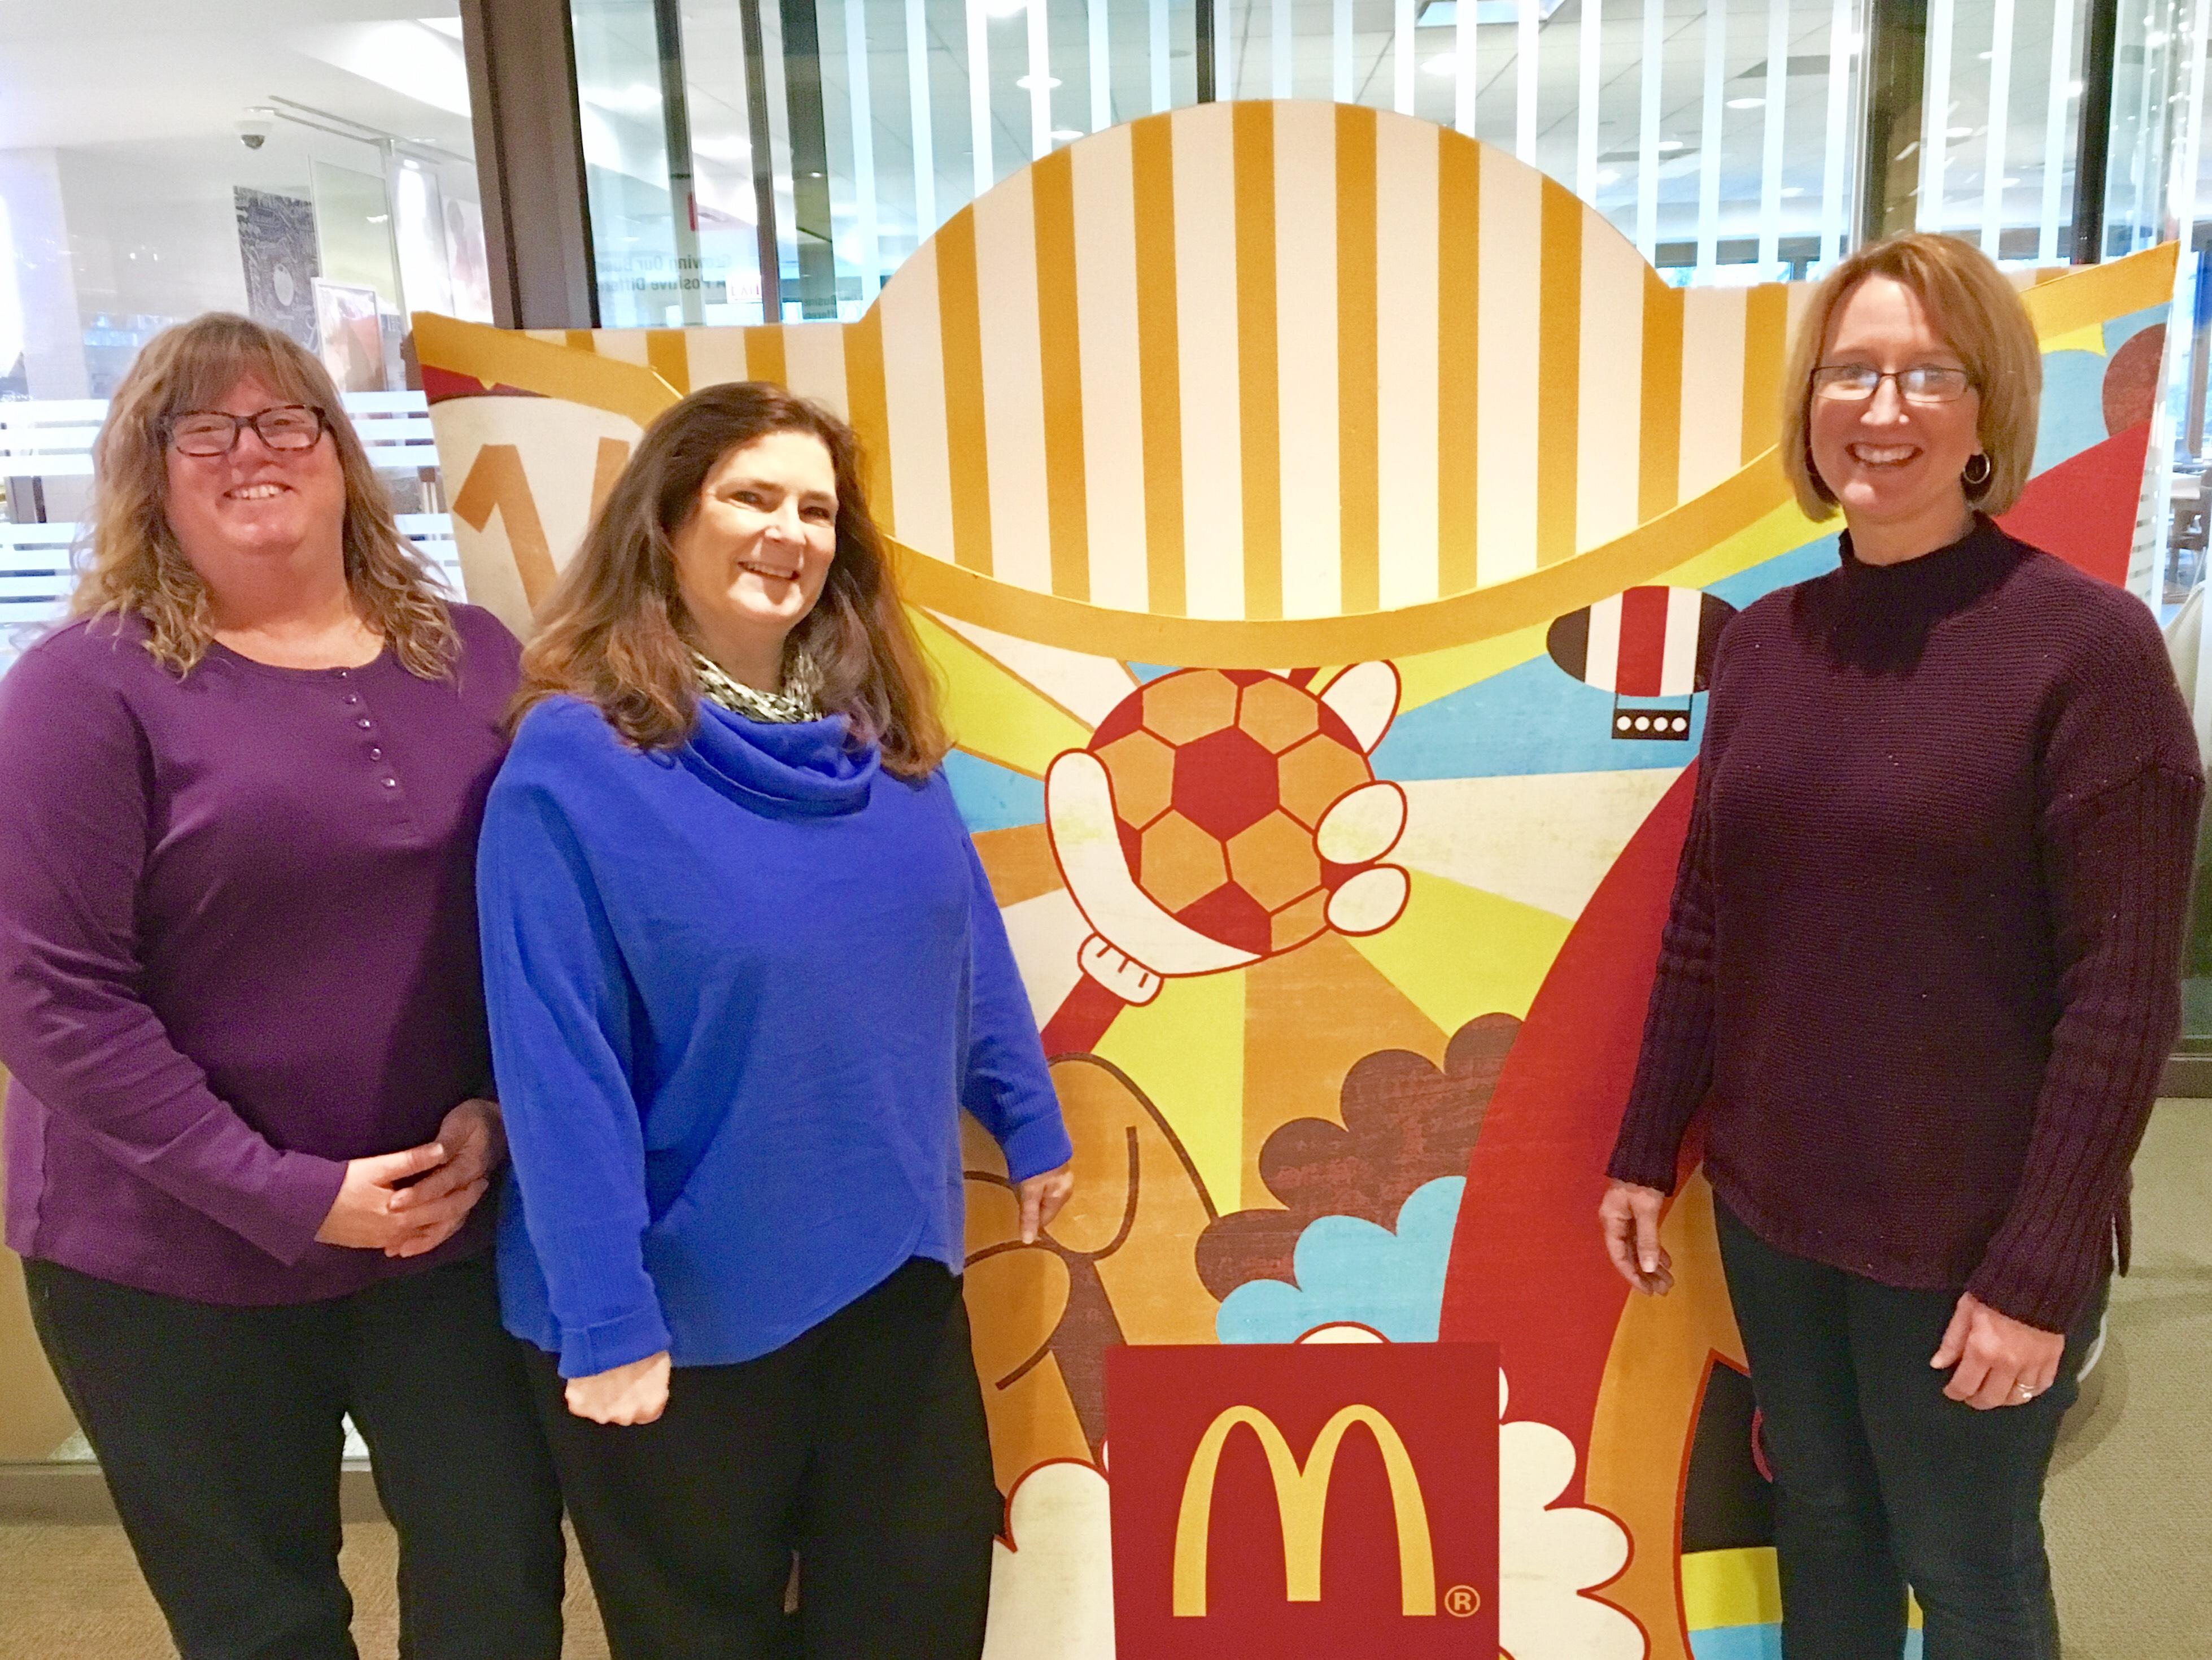 Commercial Litigation Practice Group, McDonald's Corporation. Pictured left to right: Sharyl Tamssot, Sue Stopka, Diane Diaz